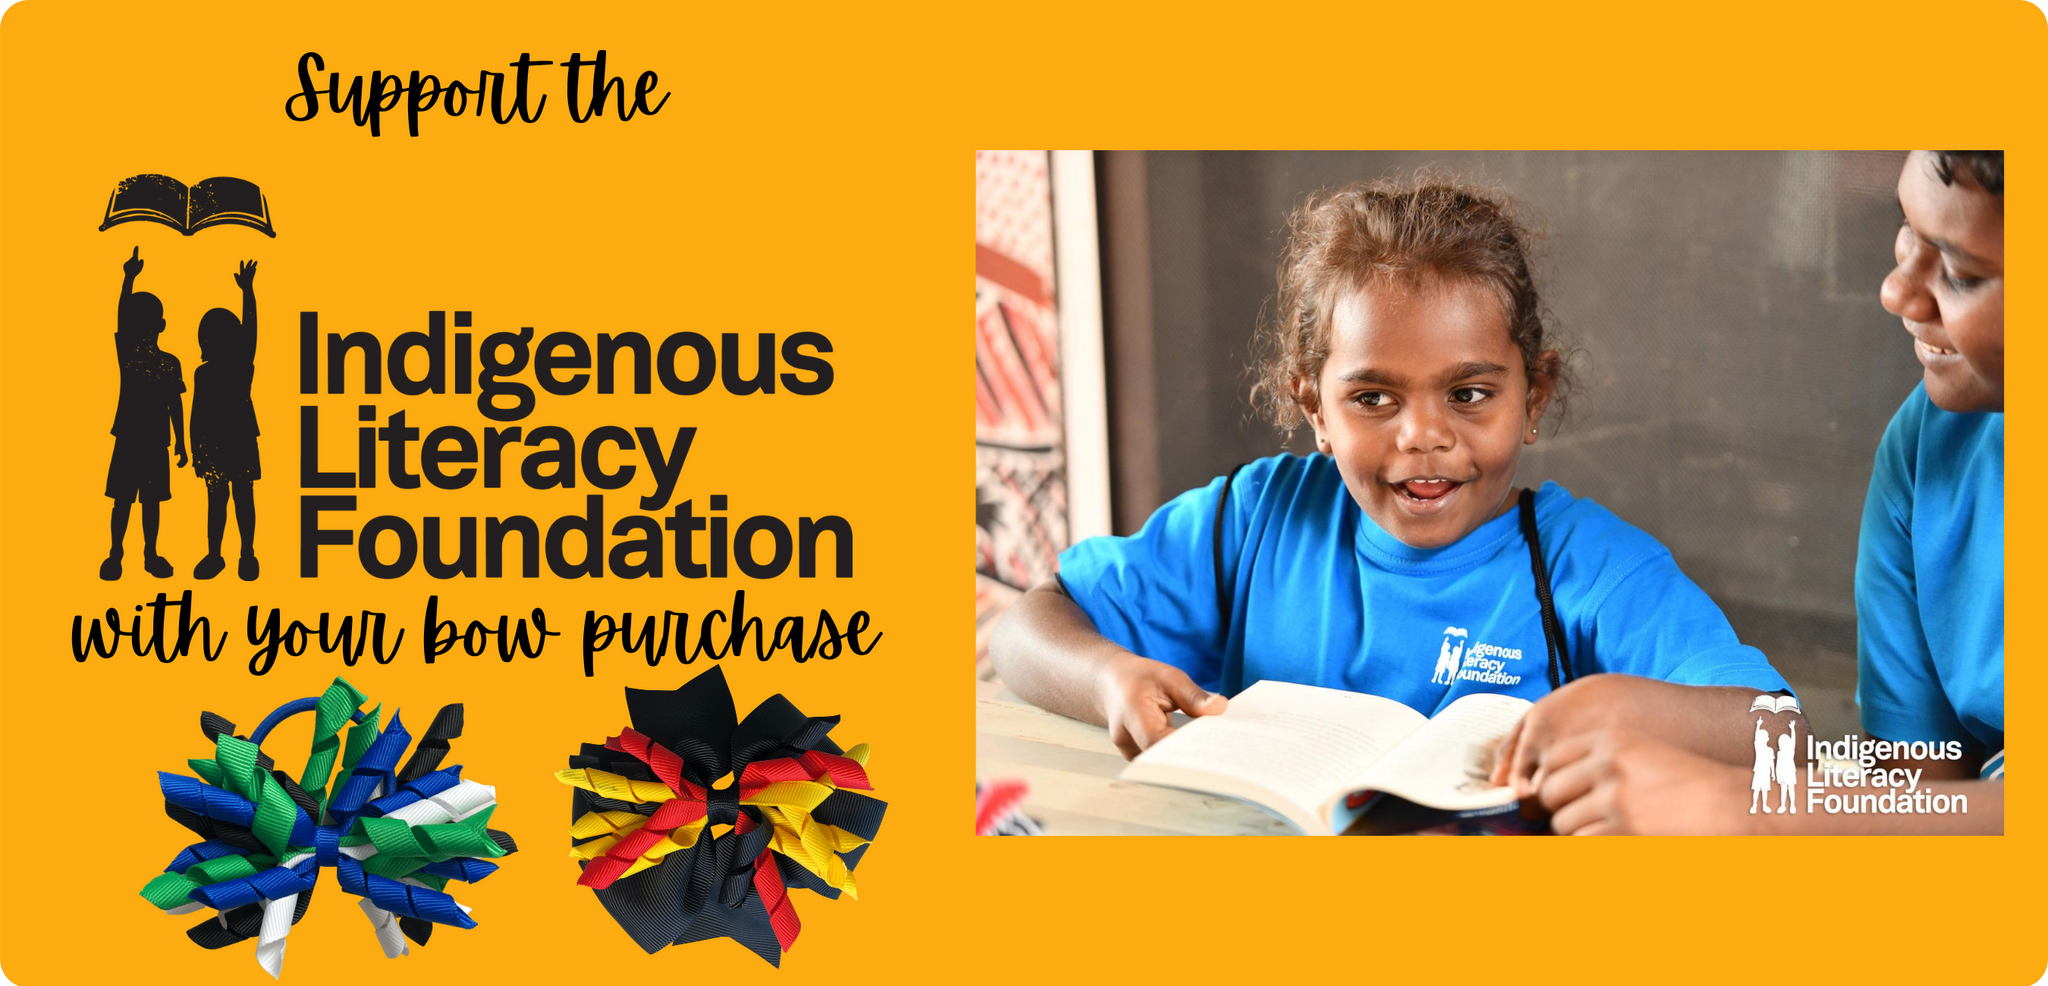 Support the Indigenous Literacy Foundation with your purchase of Aboriginal or Torres Strait Islander coloured bows